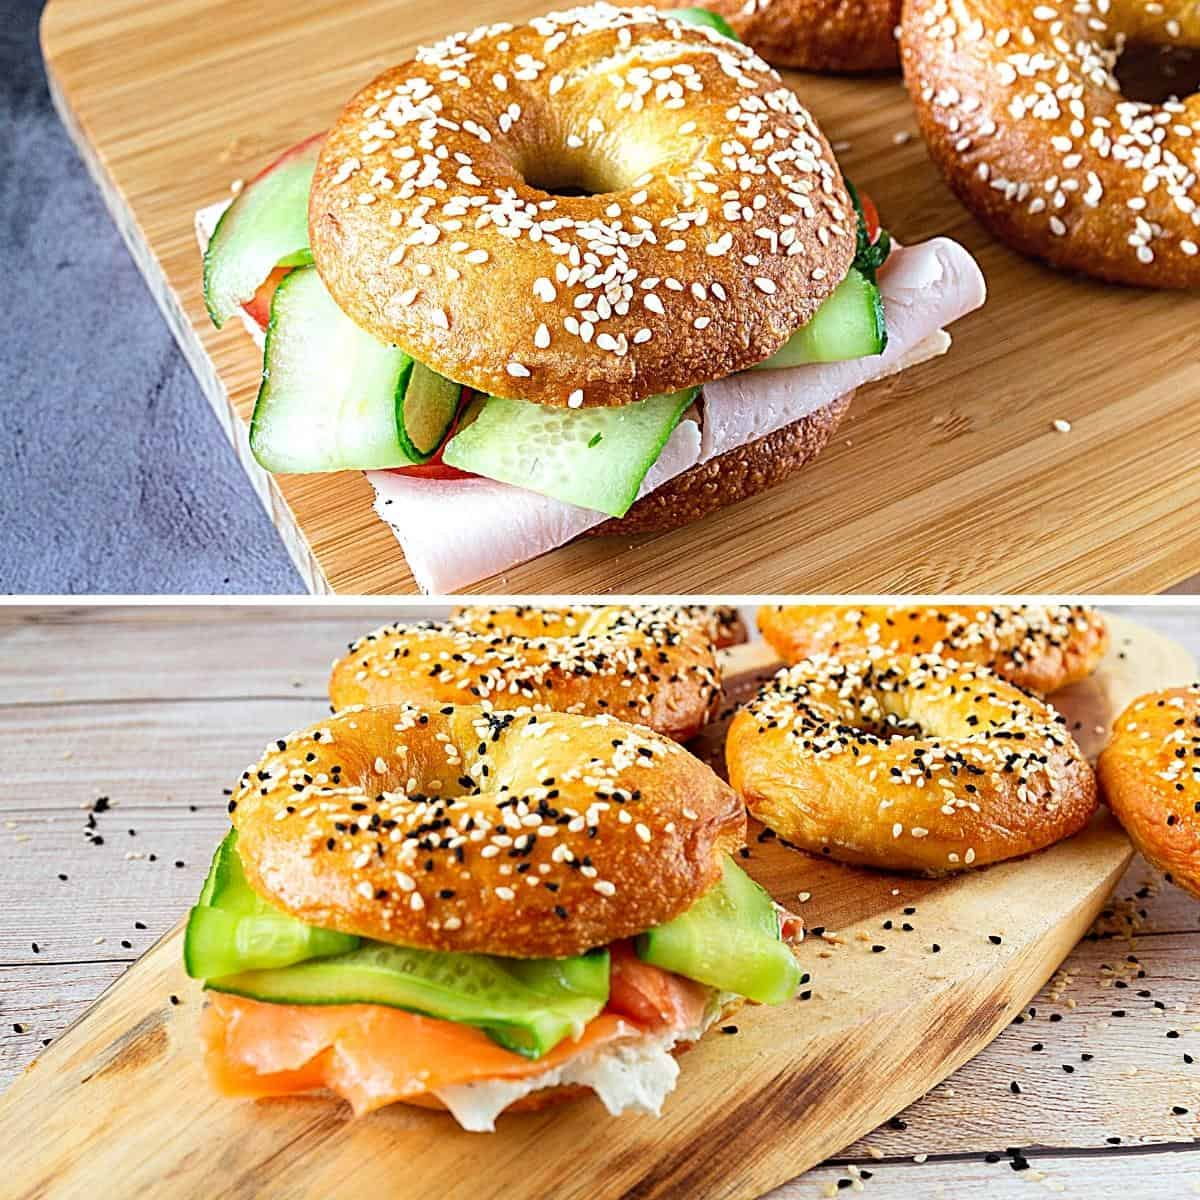 Two bagel sandwiches one with pastrami or lox.